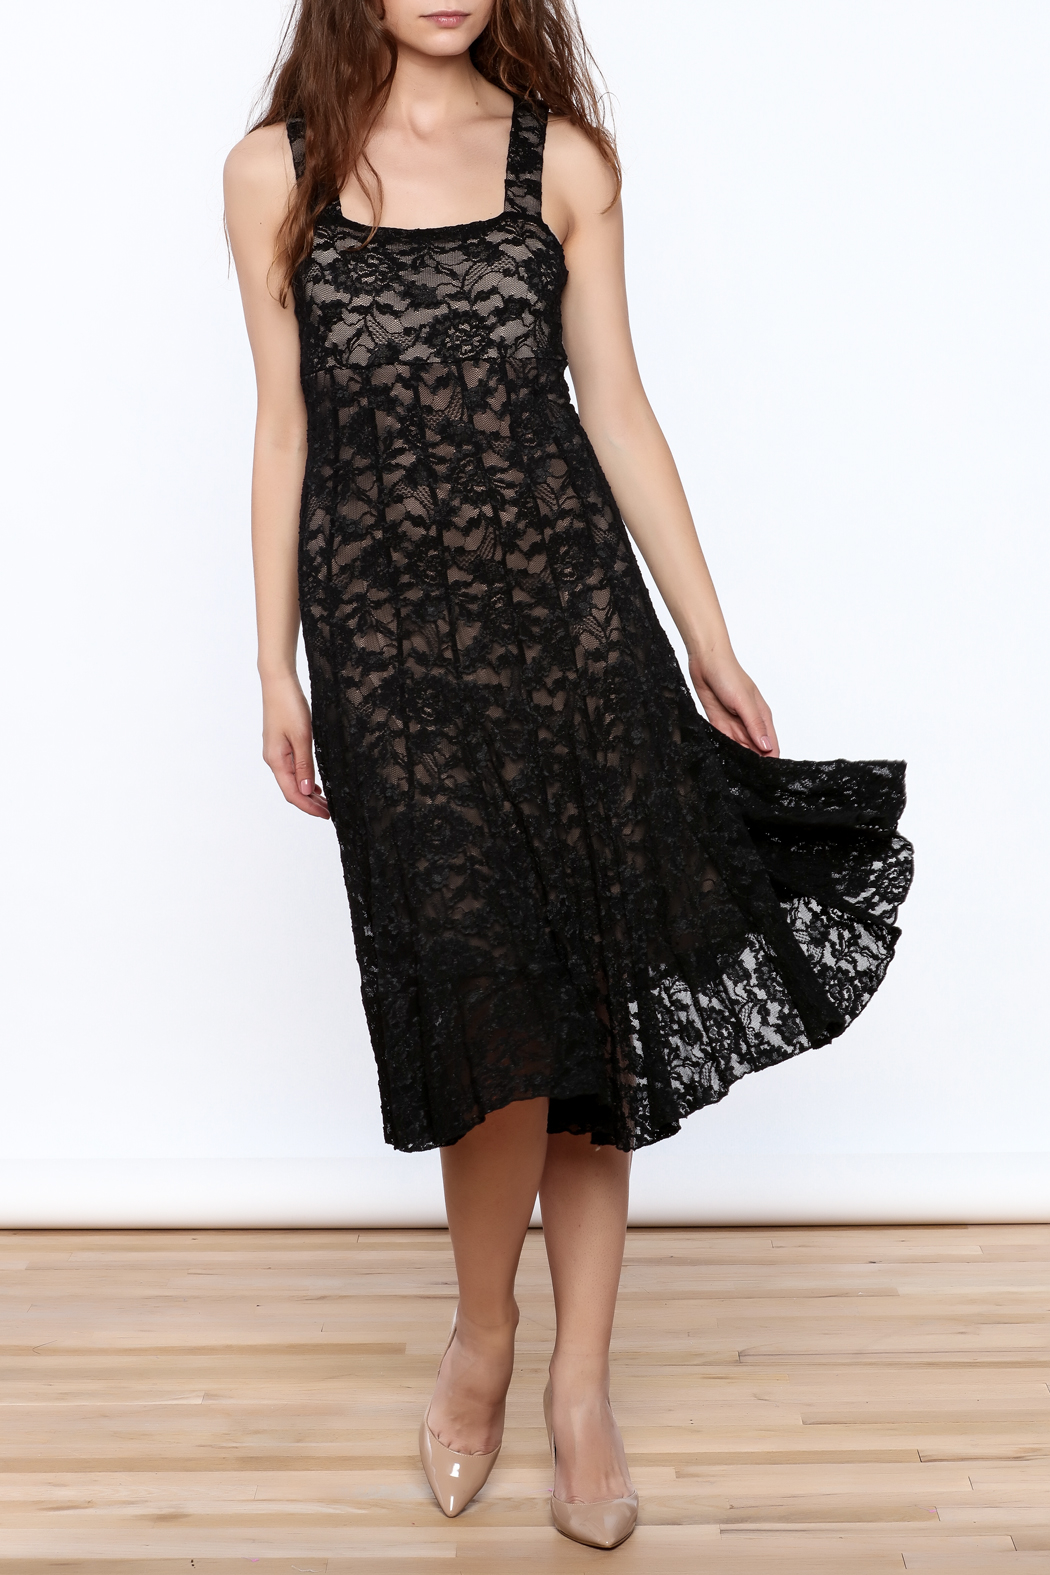 Sharon Max Black Lace Midi Dress - Main Image